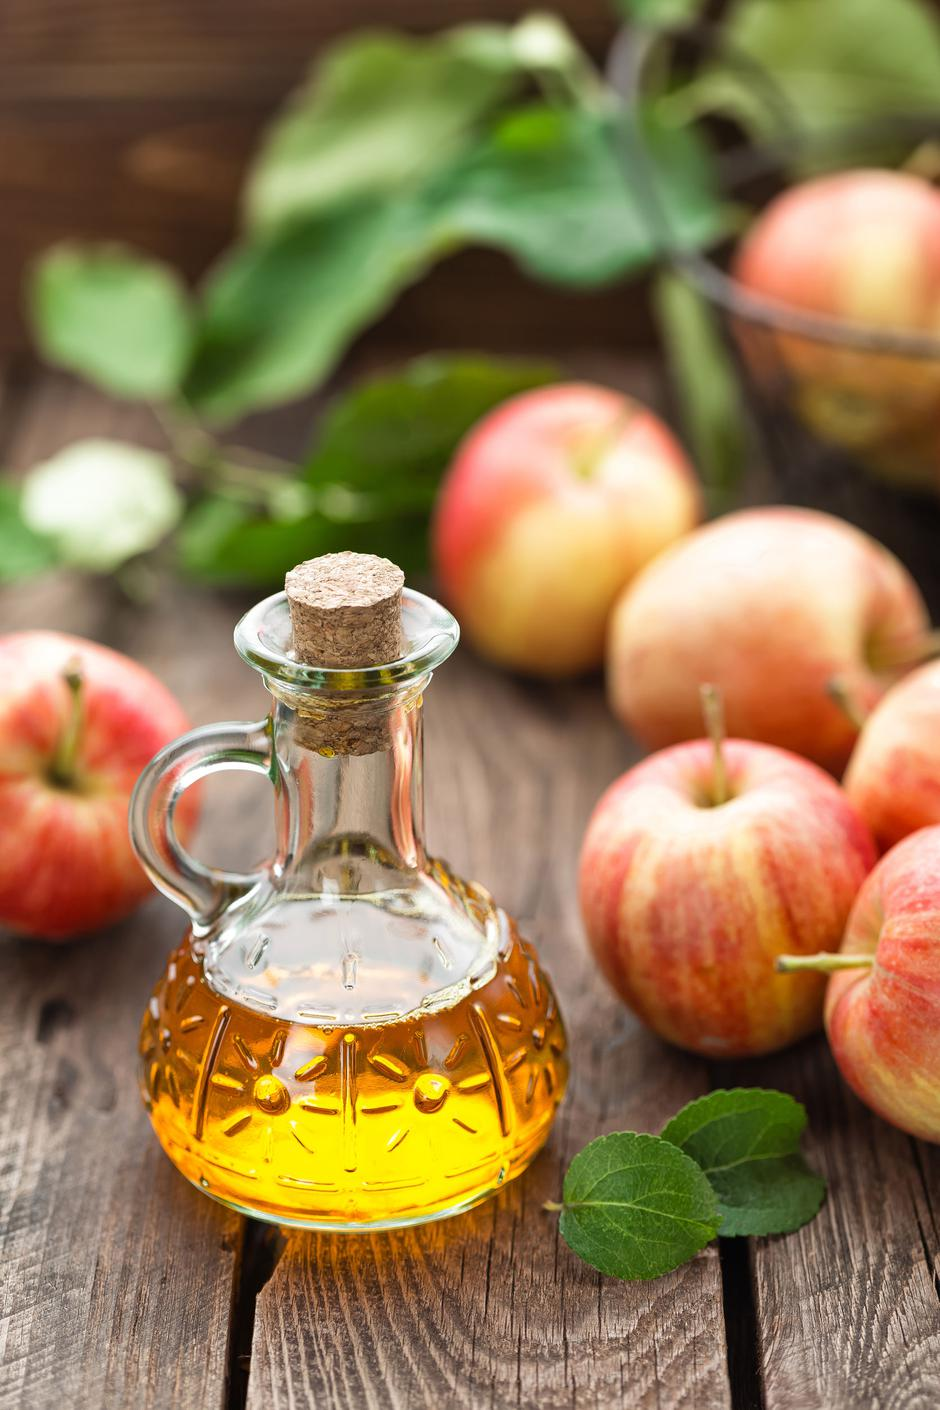 apple vinegar | Autor: 123RF